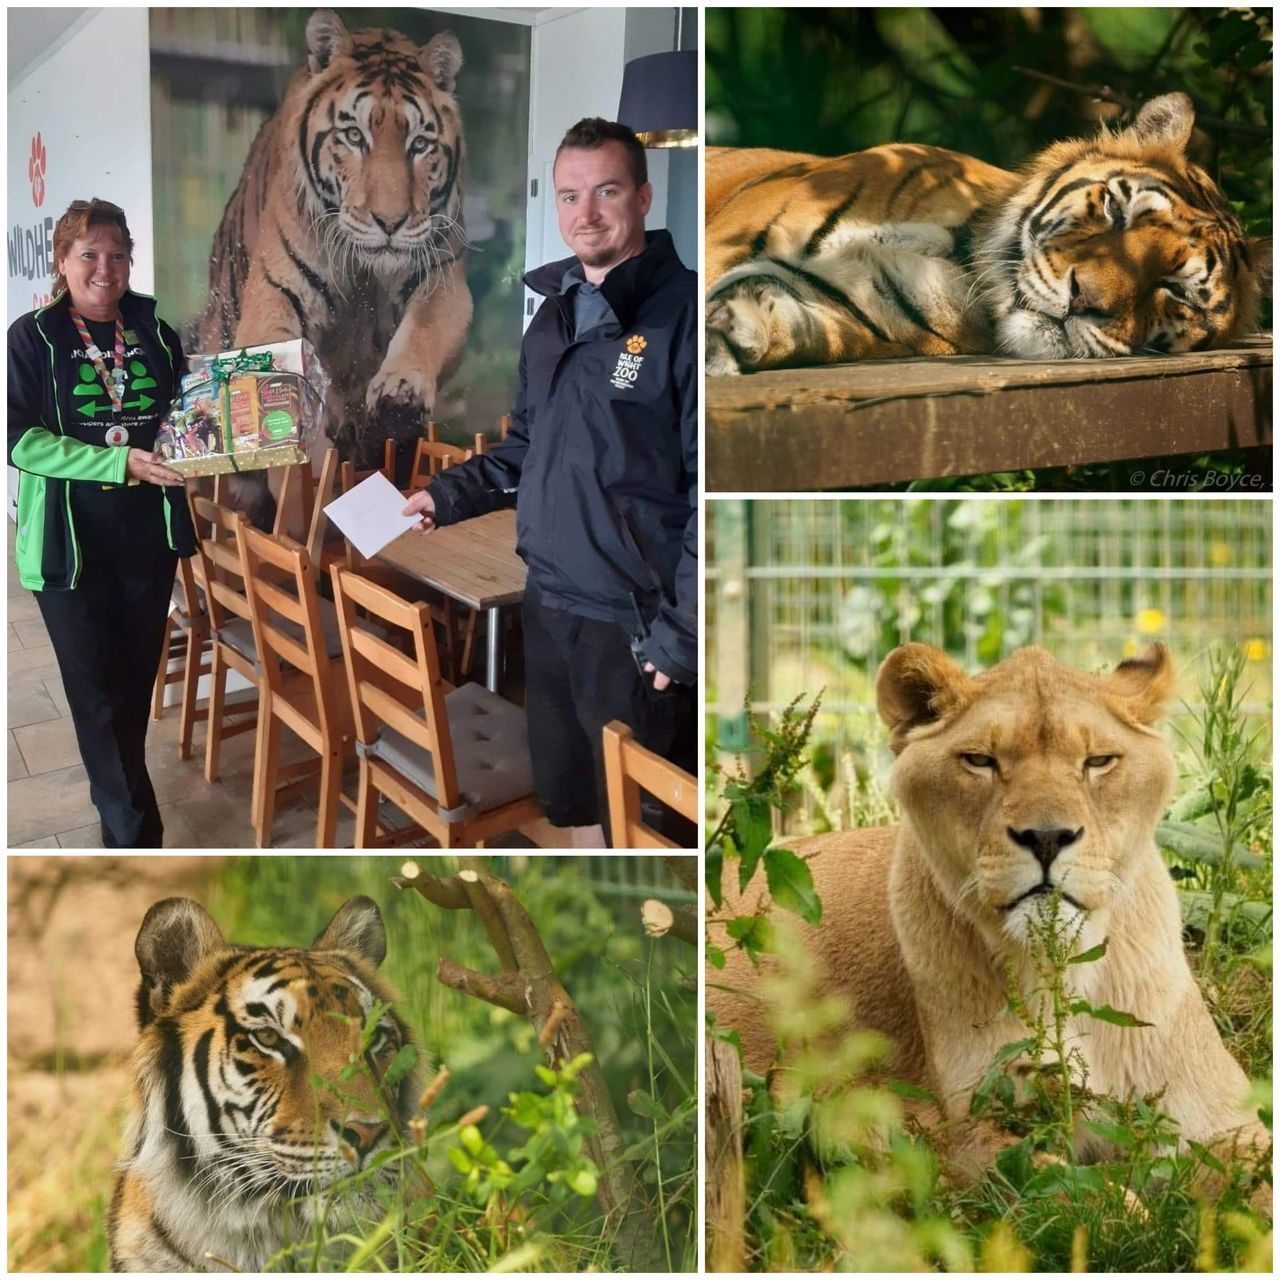 Caring colleagues help island zoo | Asda Newport Isle of Wight